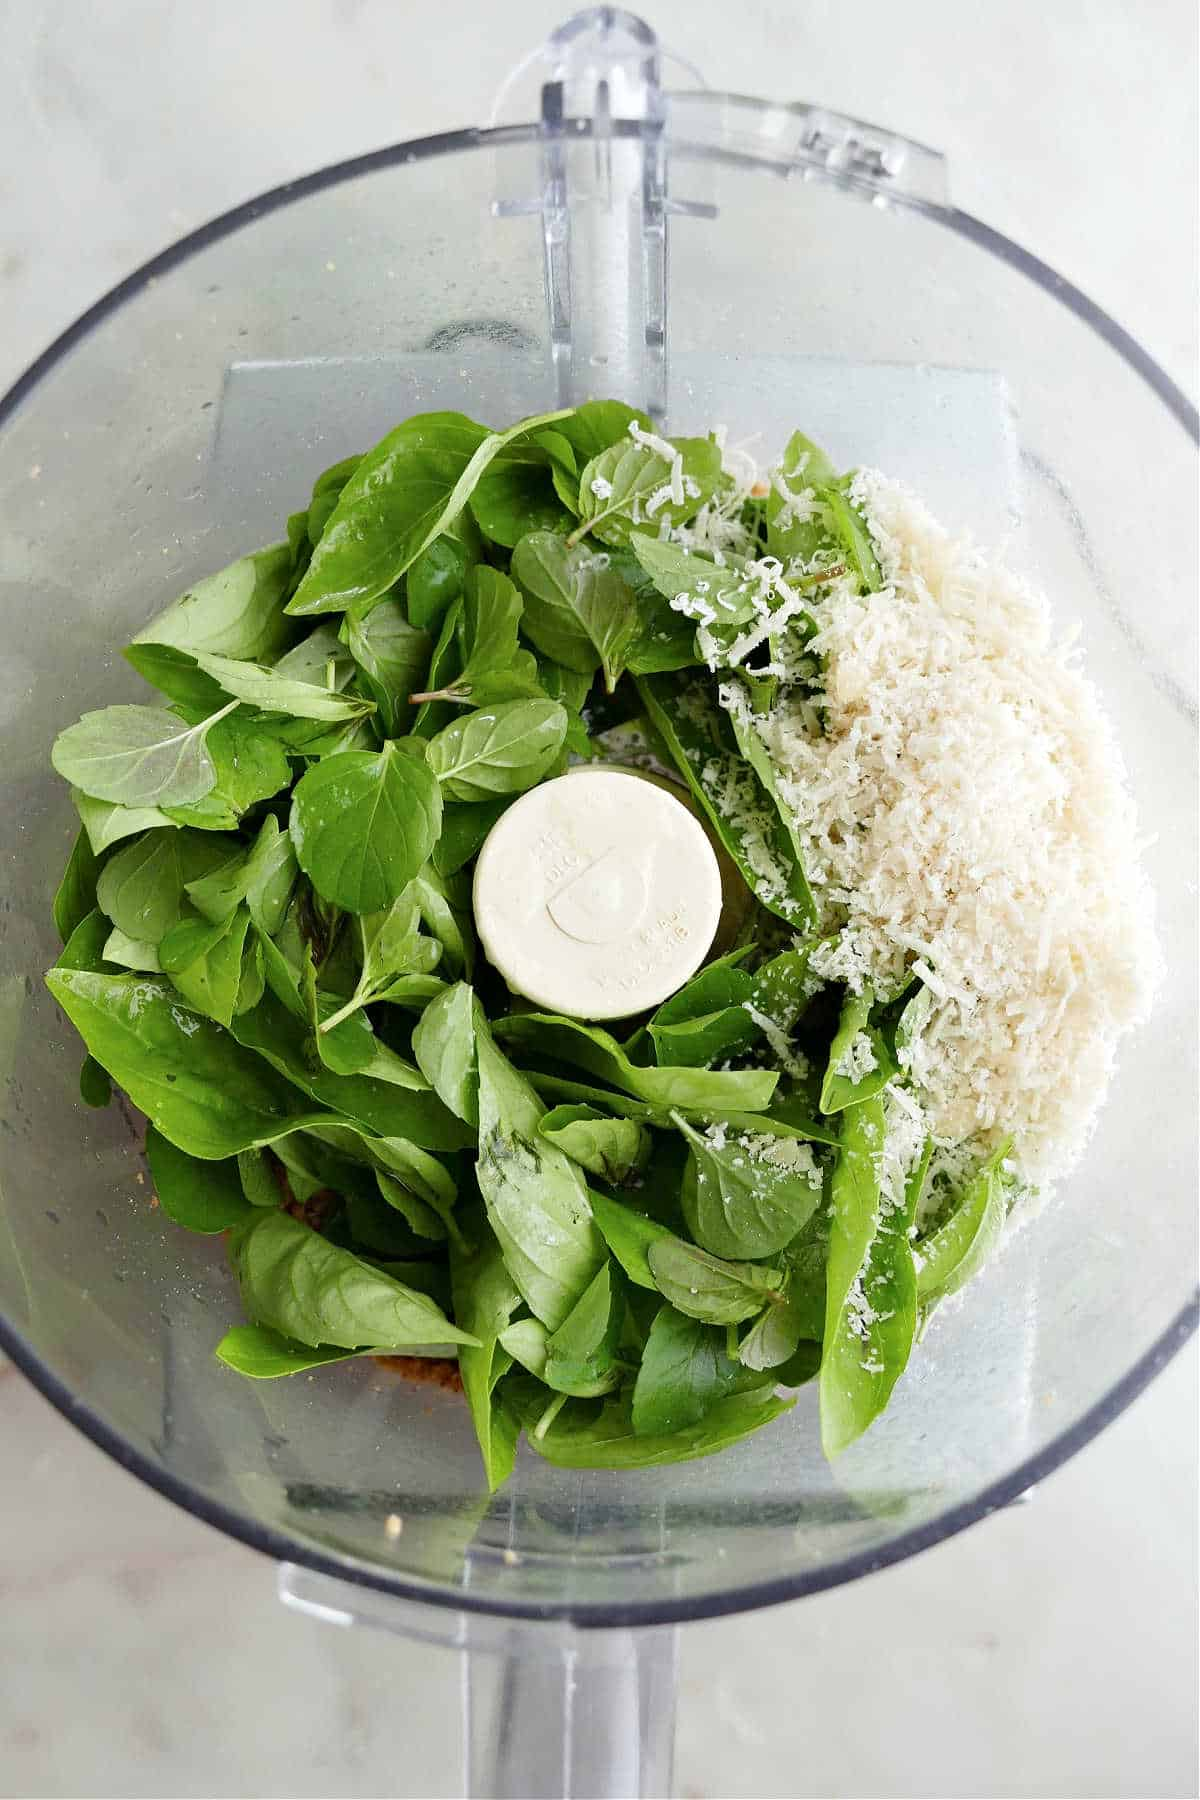 chopped pine nuts, herbs, and cheese in a food processor on a counter